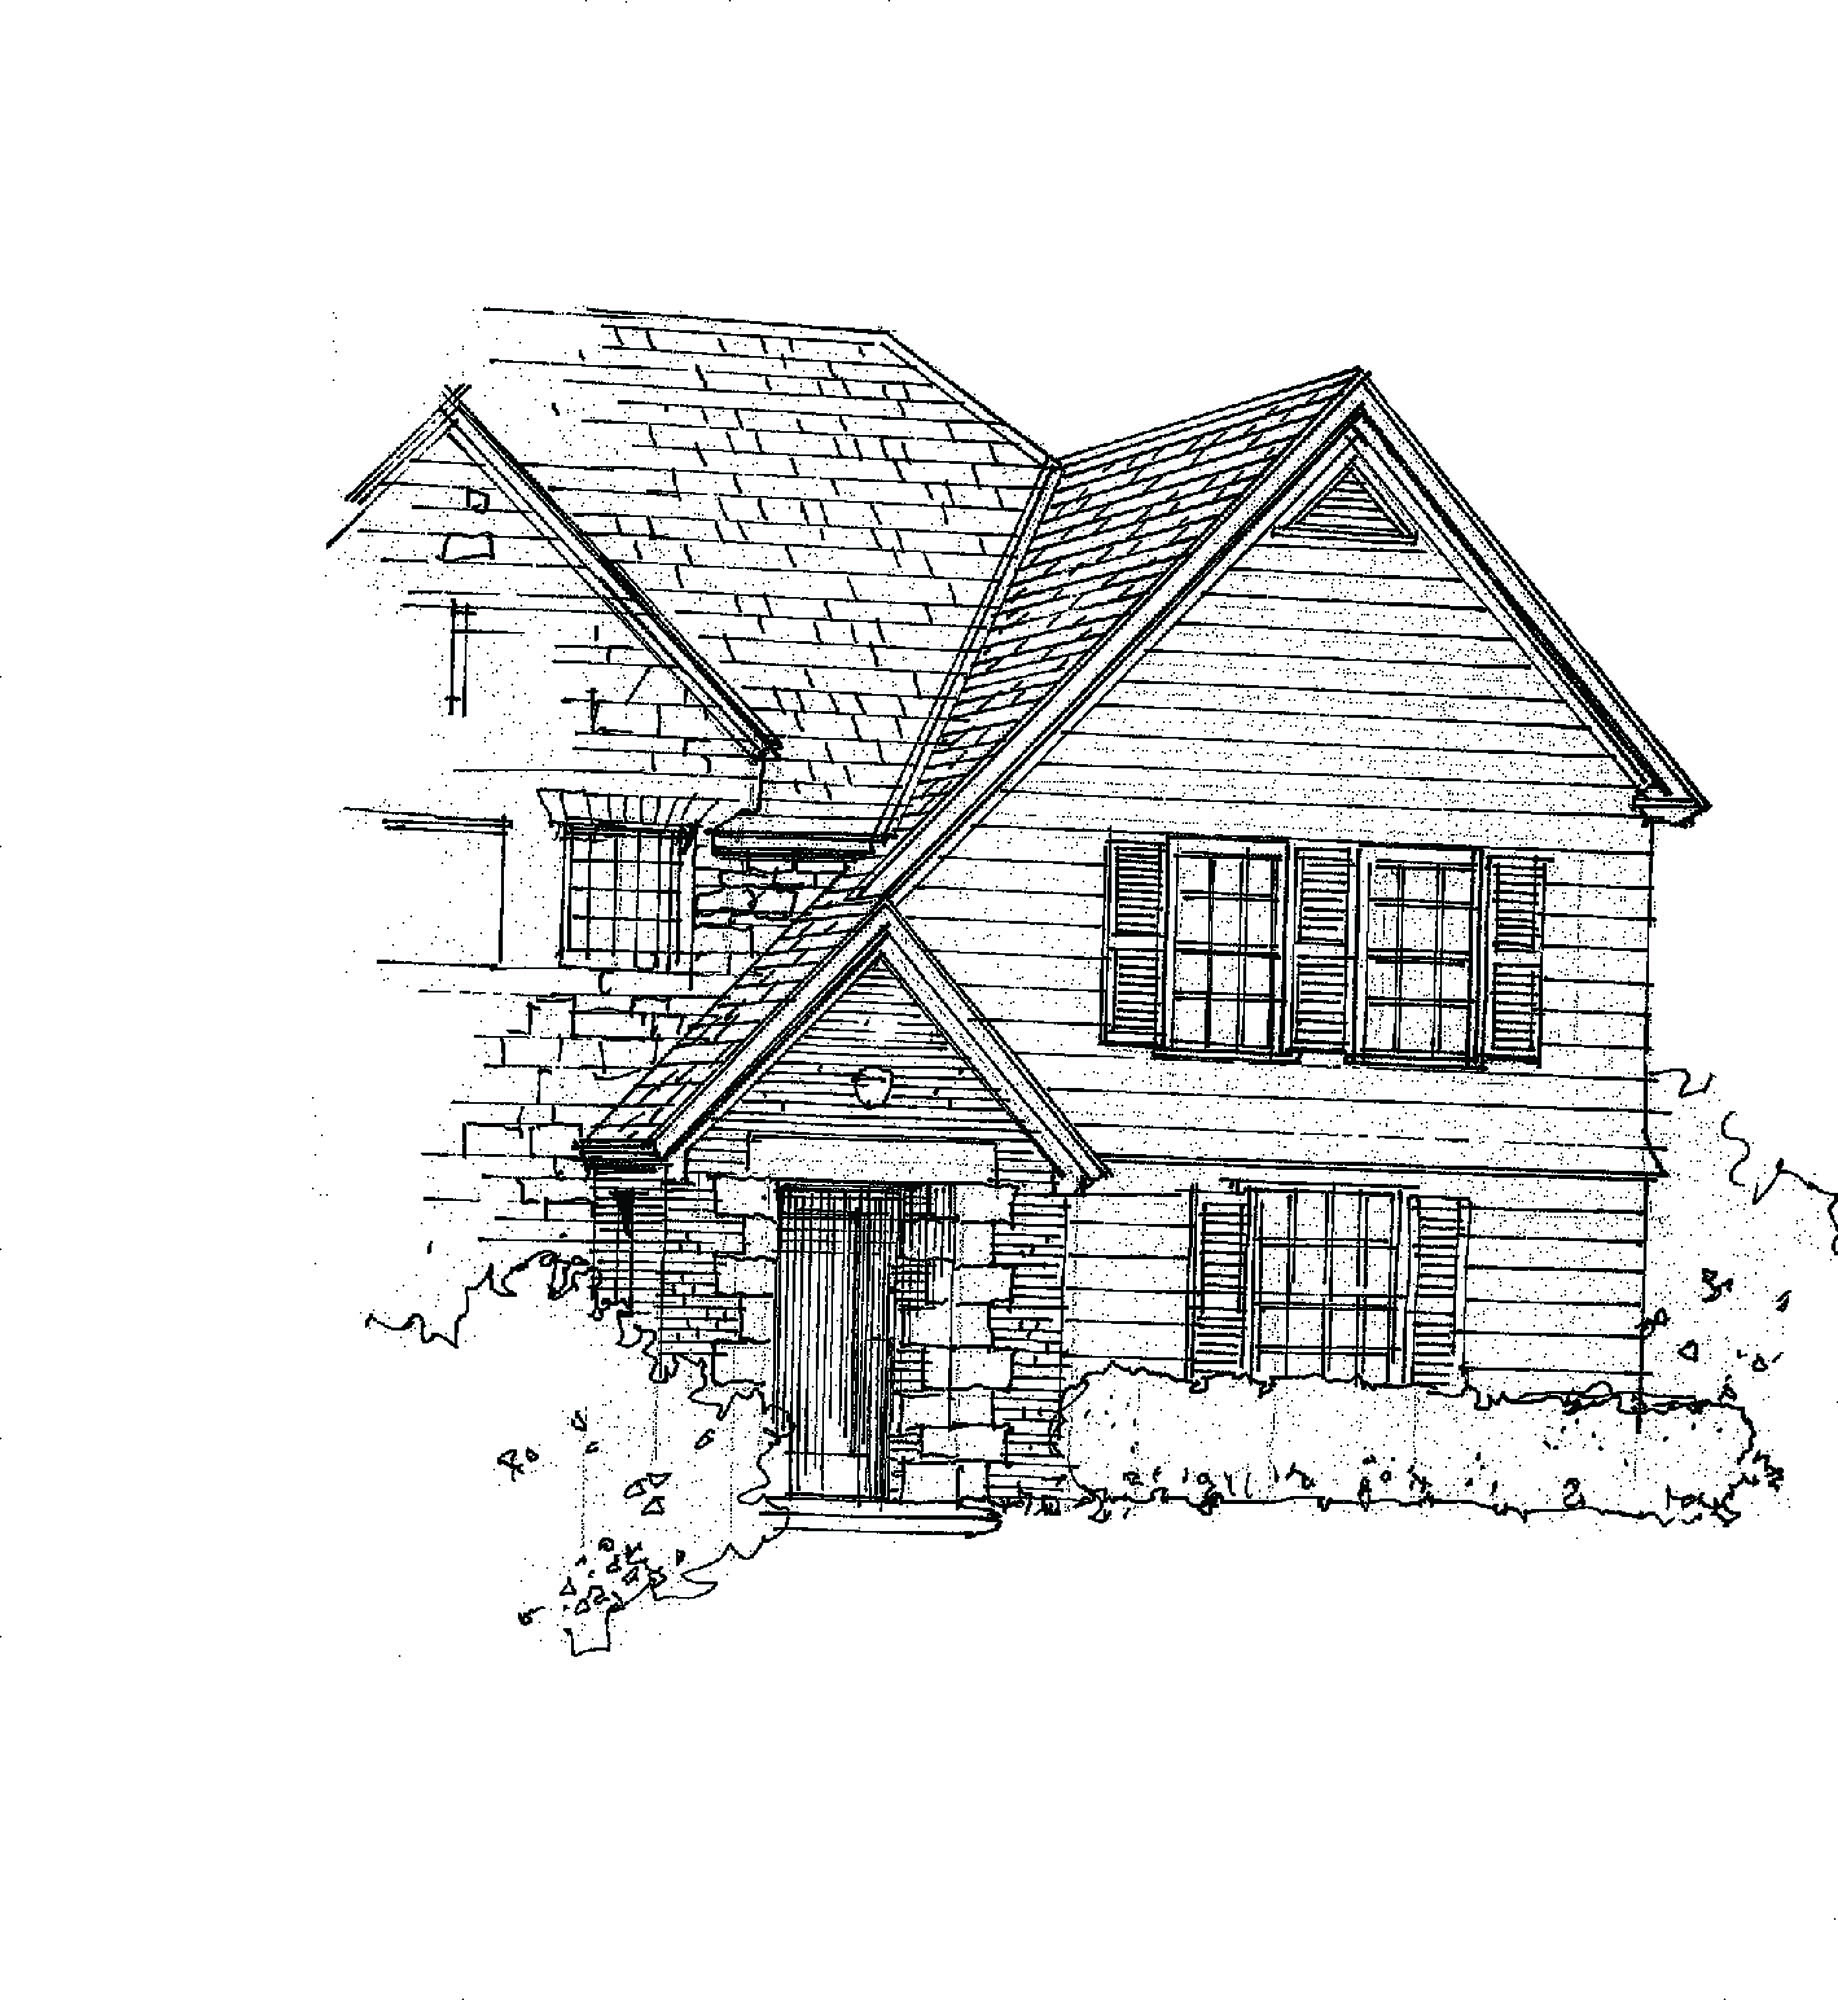 Steep Gabled Roofs: A typical cross-gabled builder's house plan, even wood-framed houses, could be tweaked toward Tudor with a steeper roof pitch and an articulated entry house or front door.